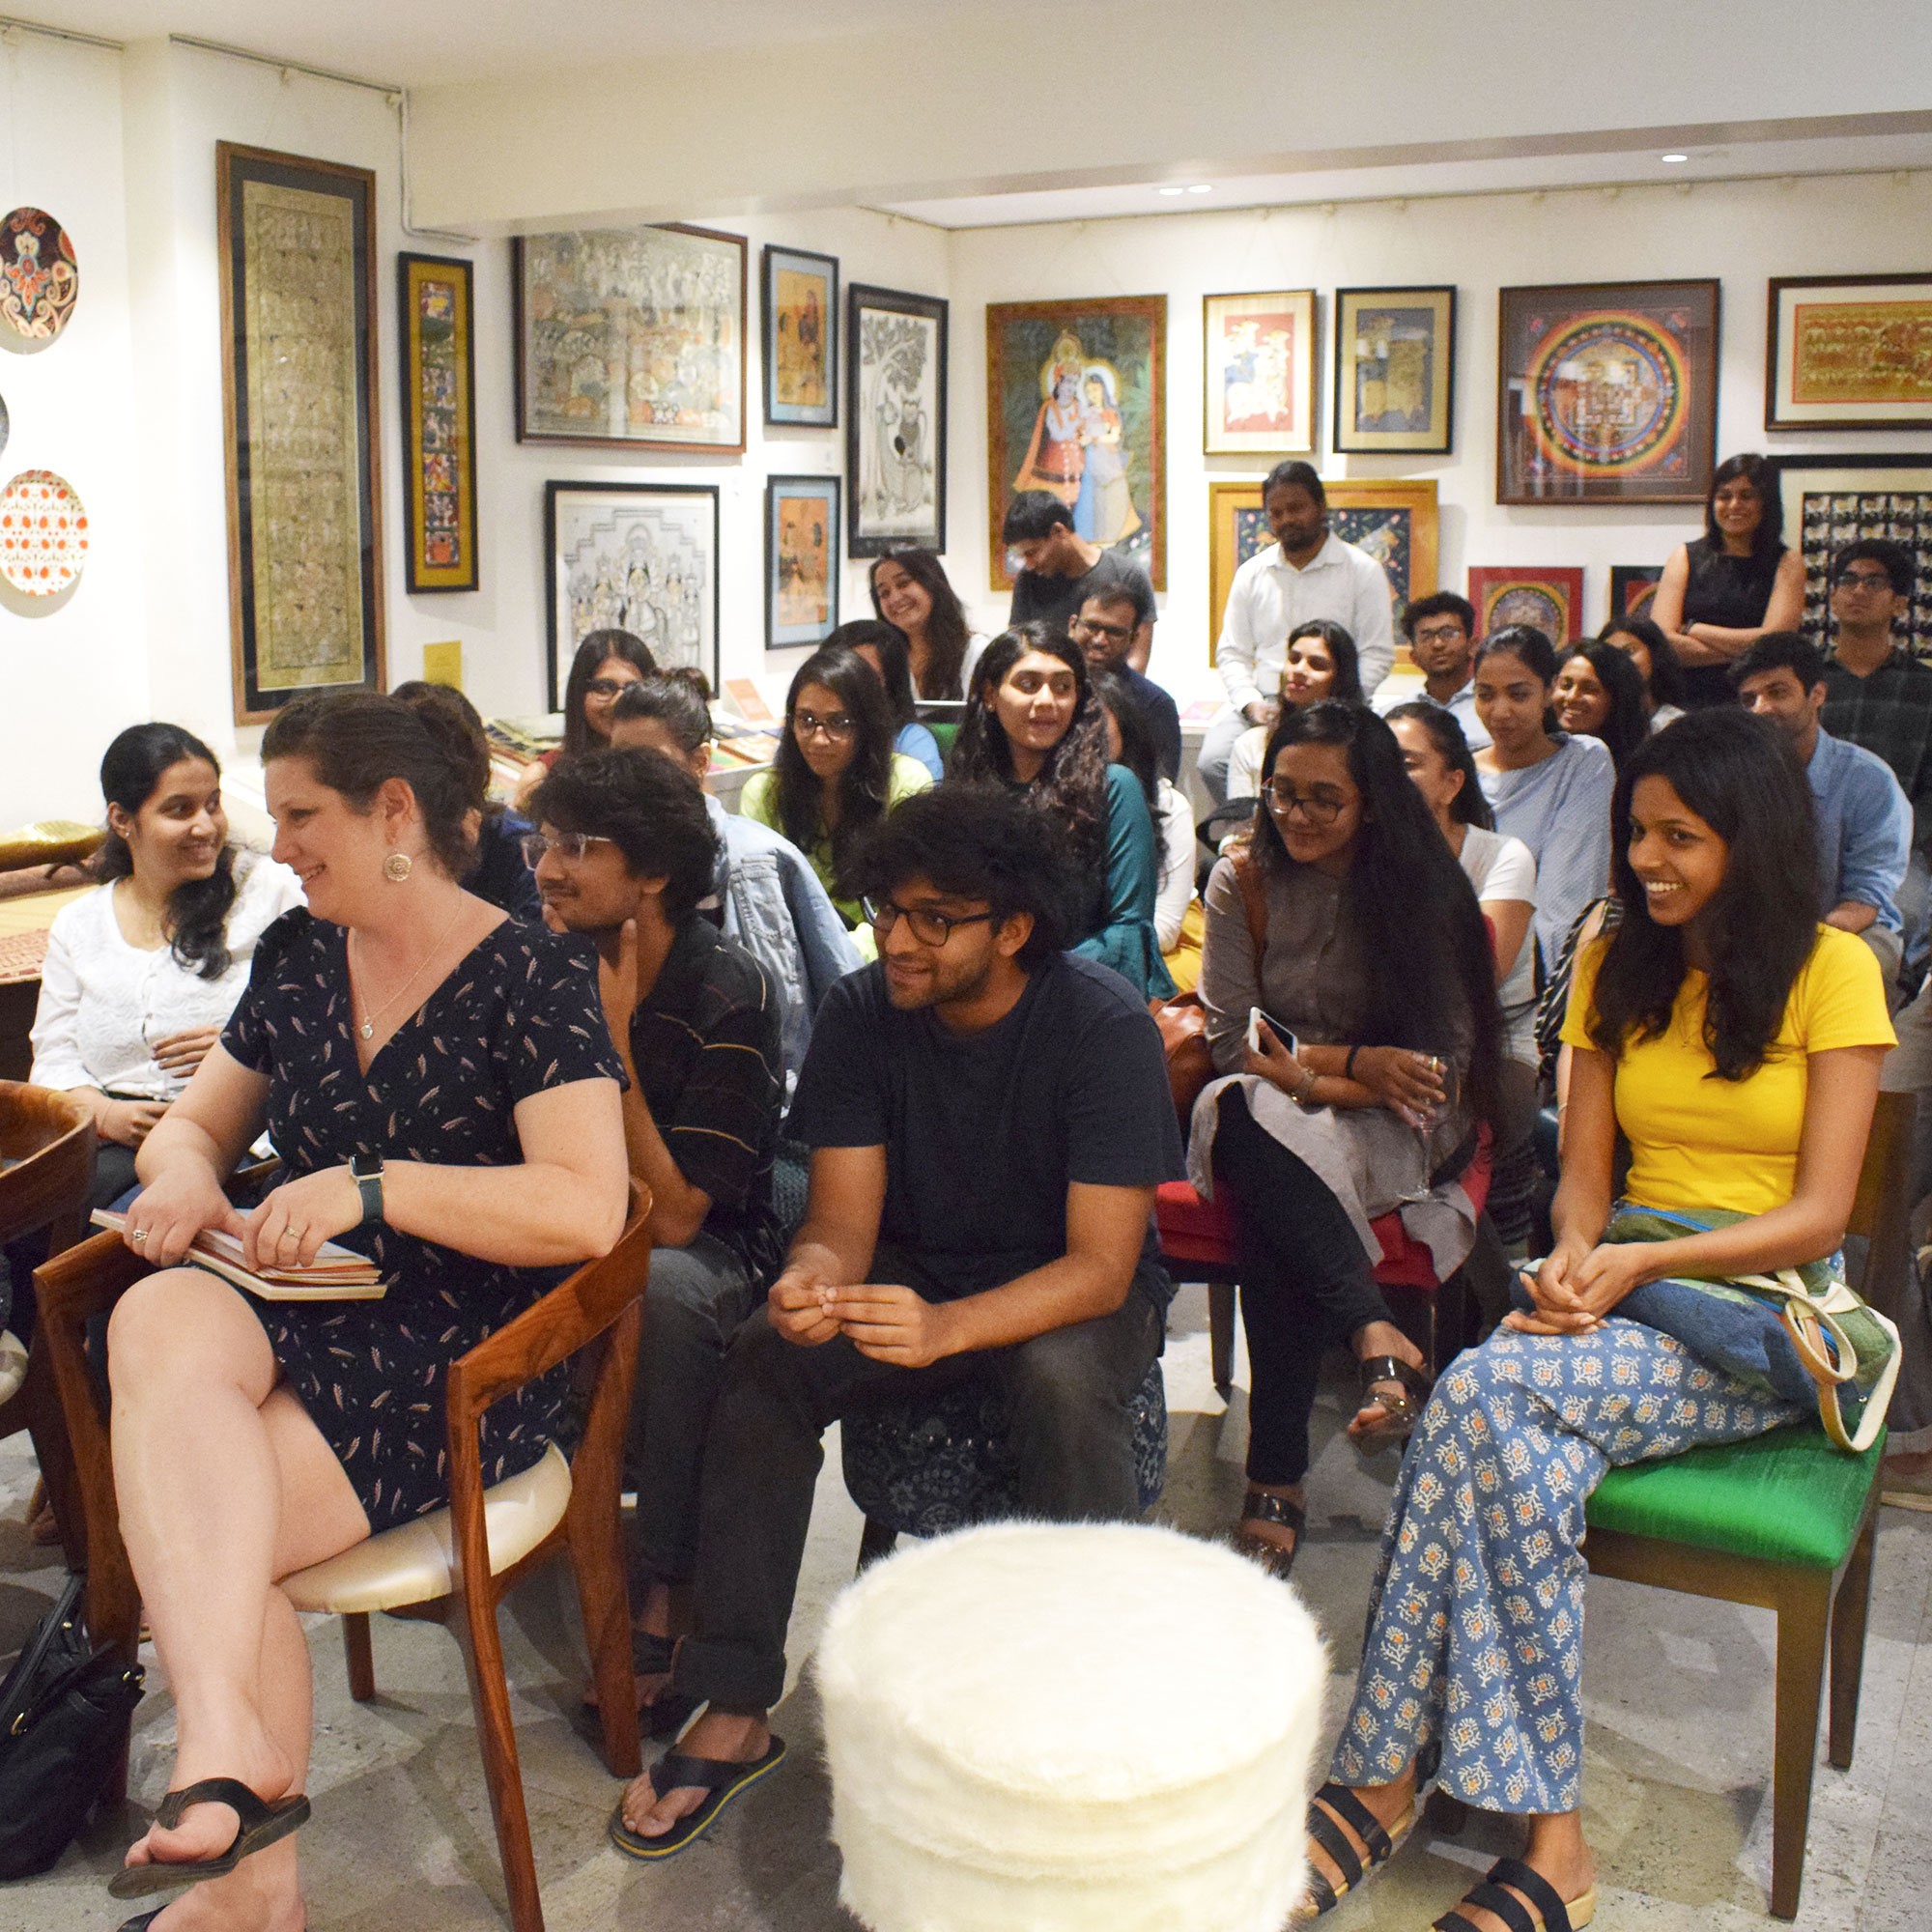 30 of the youngest and brightest minds in the field of design from across Mumbai joined us at The Baaya Store for an insightful session with faculty from Syracuse University